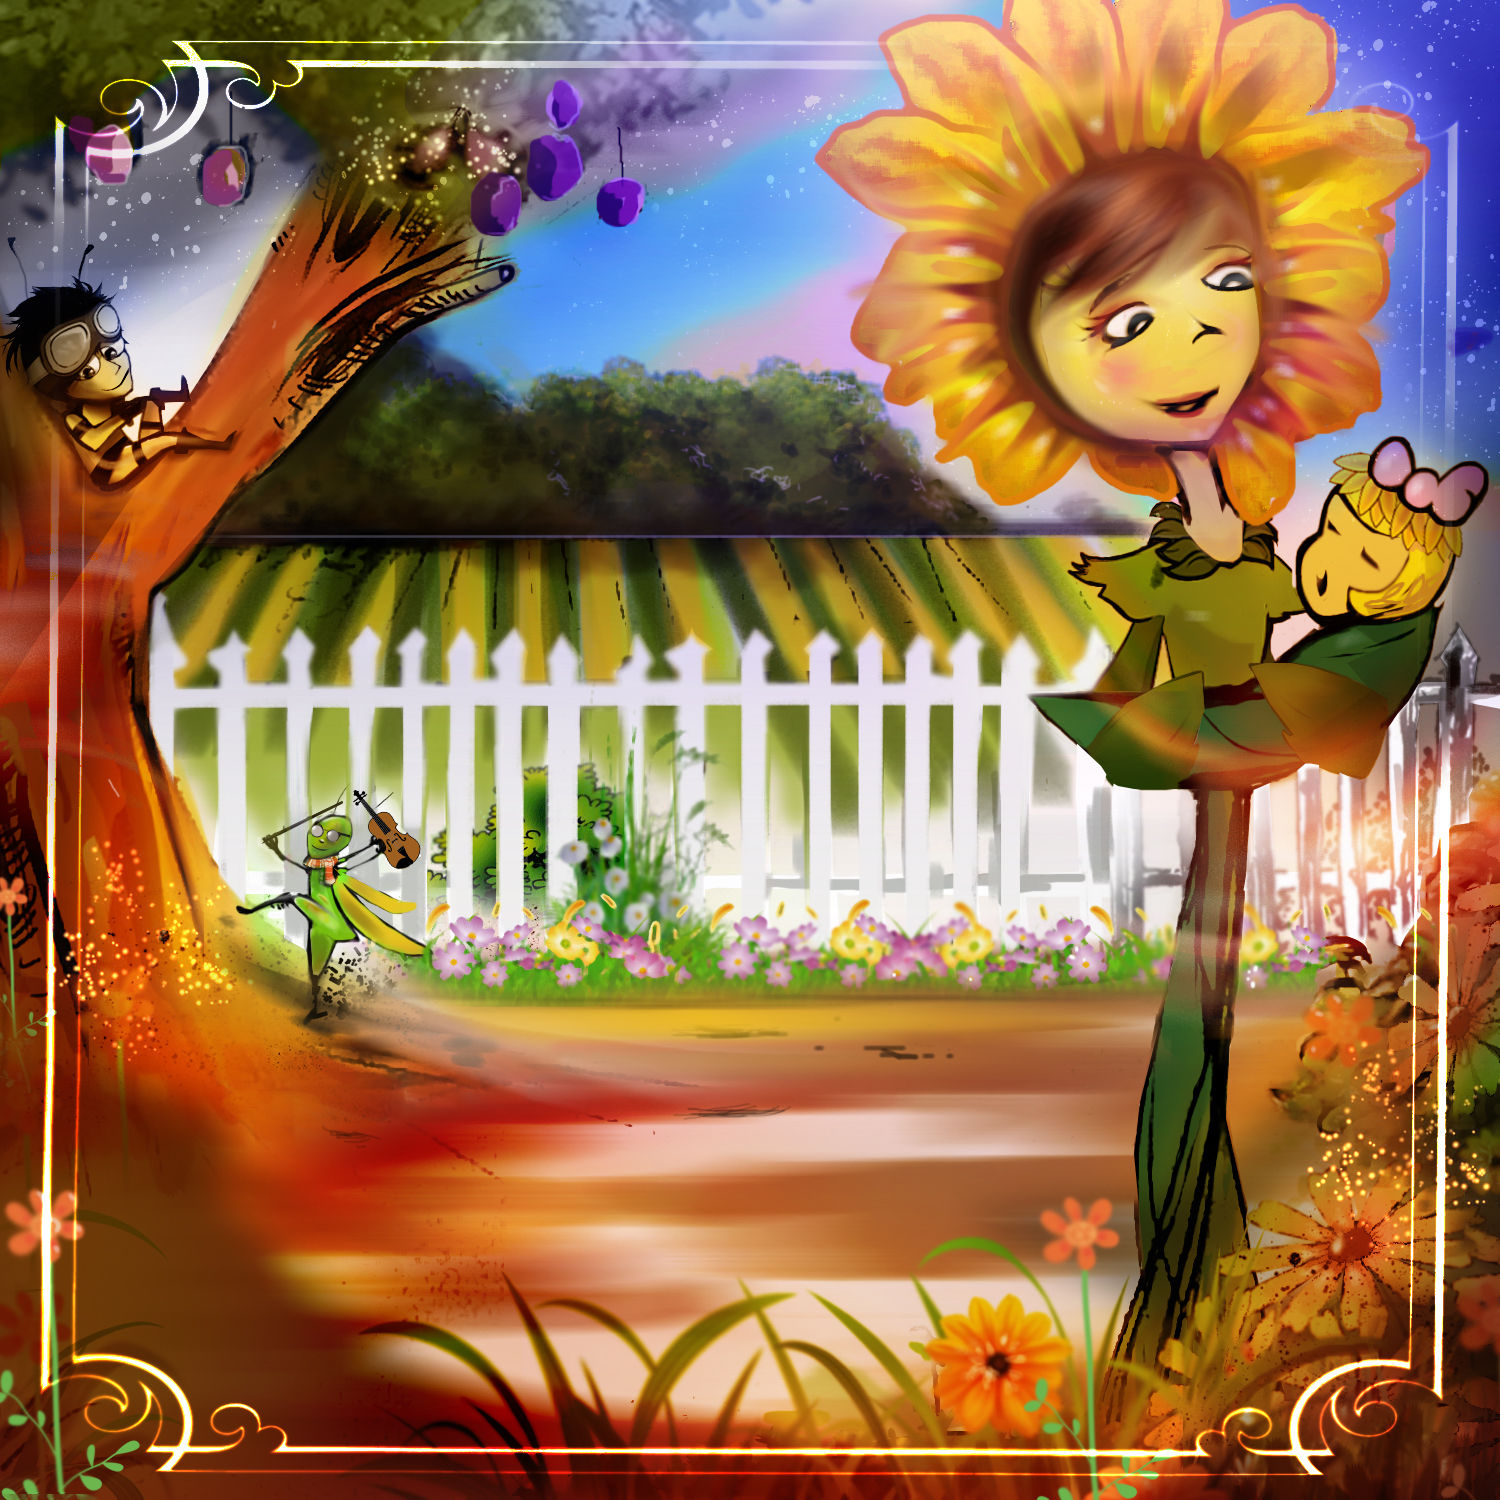 Winkie and the Sunflower